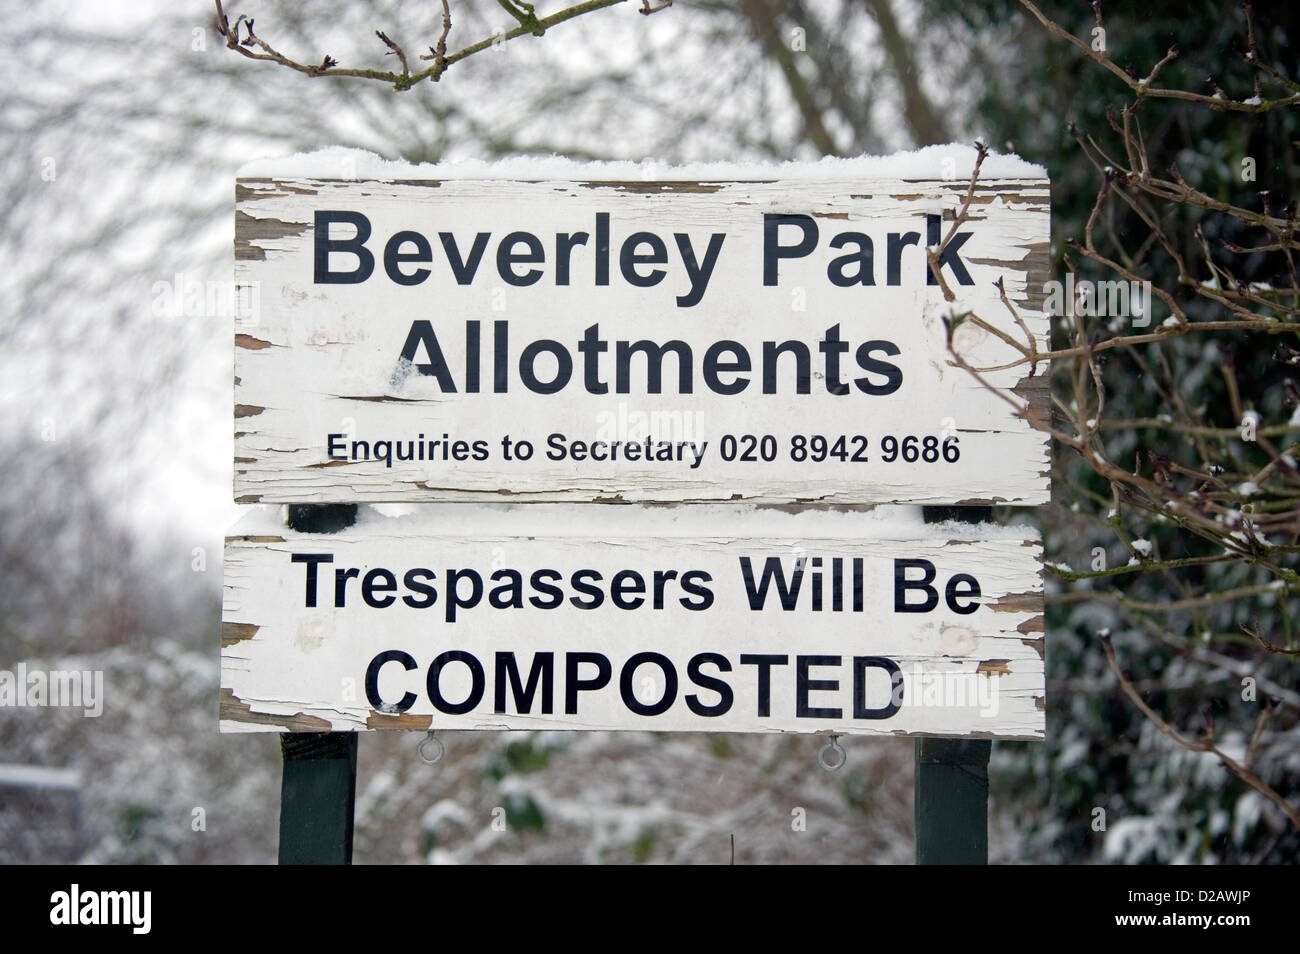 An allotment sign warning that trespassers will be composted. - Stock Image